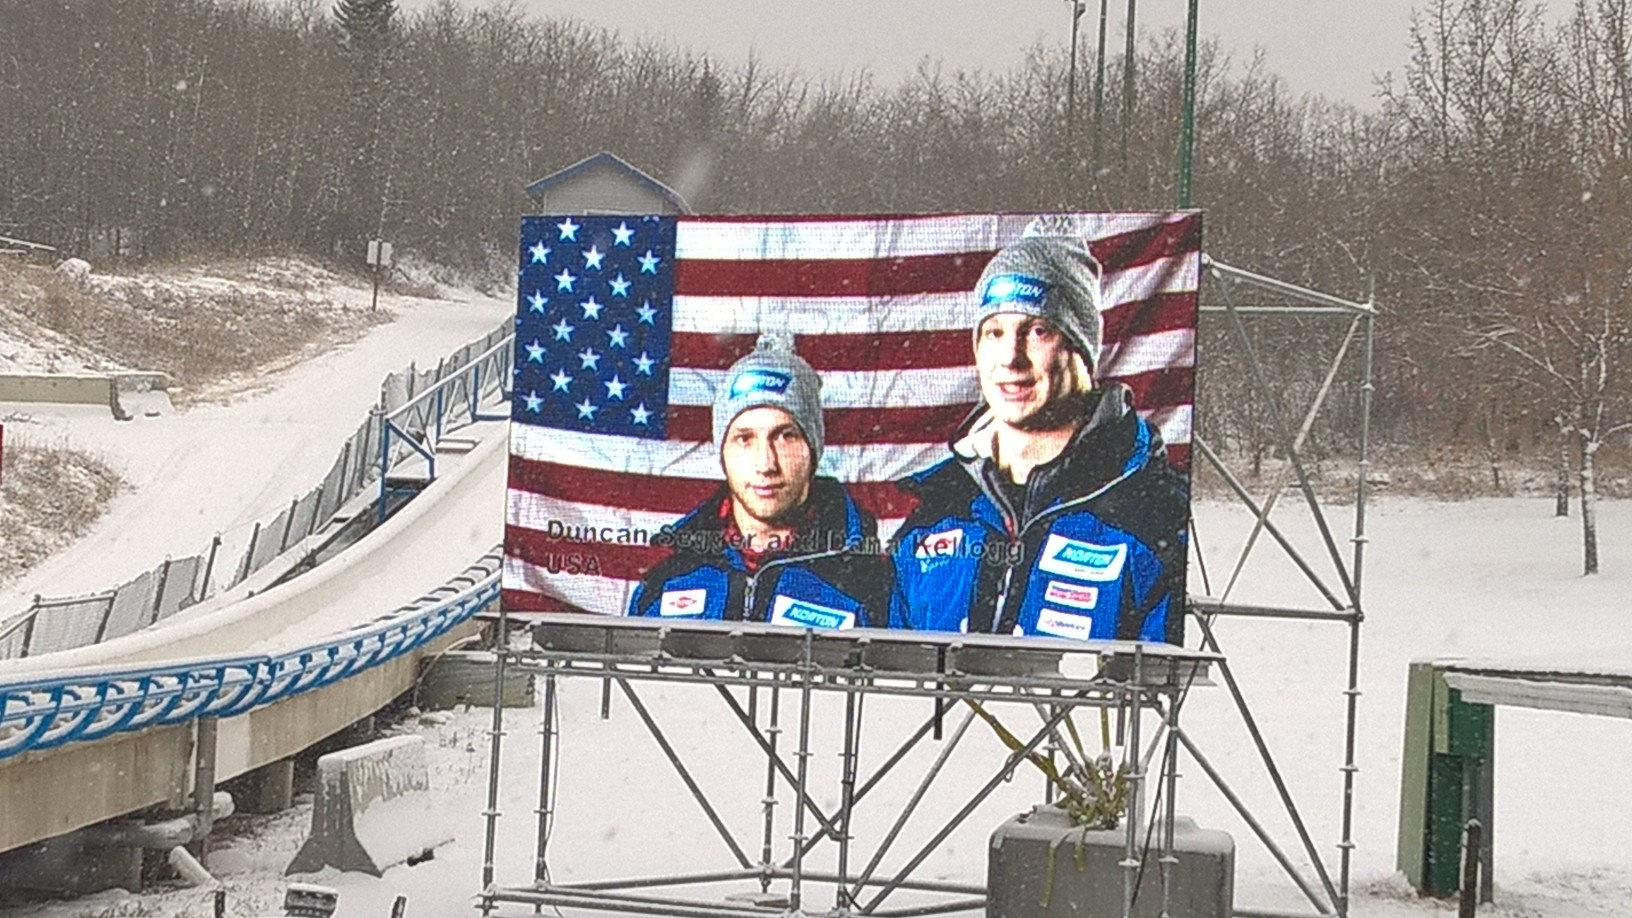 dana-kellogg-wins-bronze-at-jr-olympics-projection-billboard